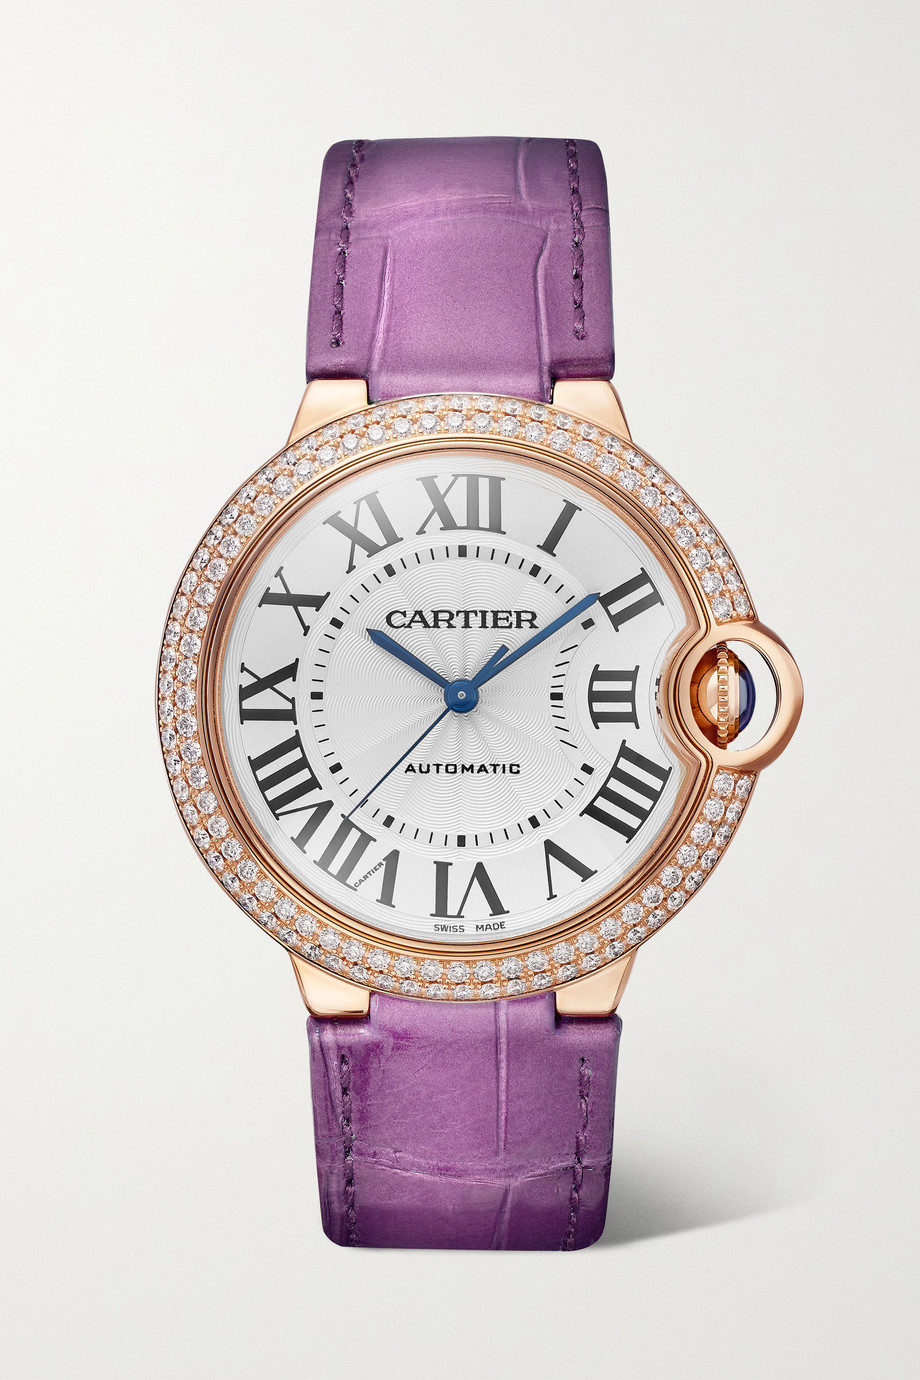 CARTIER Ballon Bleu de Cartier Automatic 36mm 18-karat pink gold, alligator and diamond watch